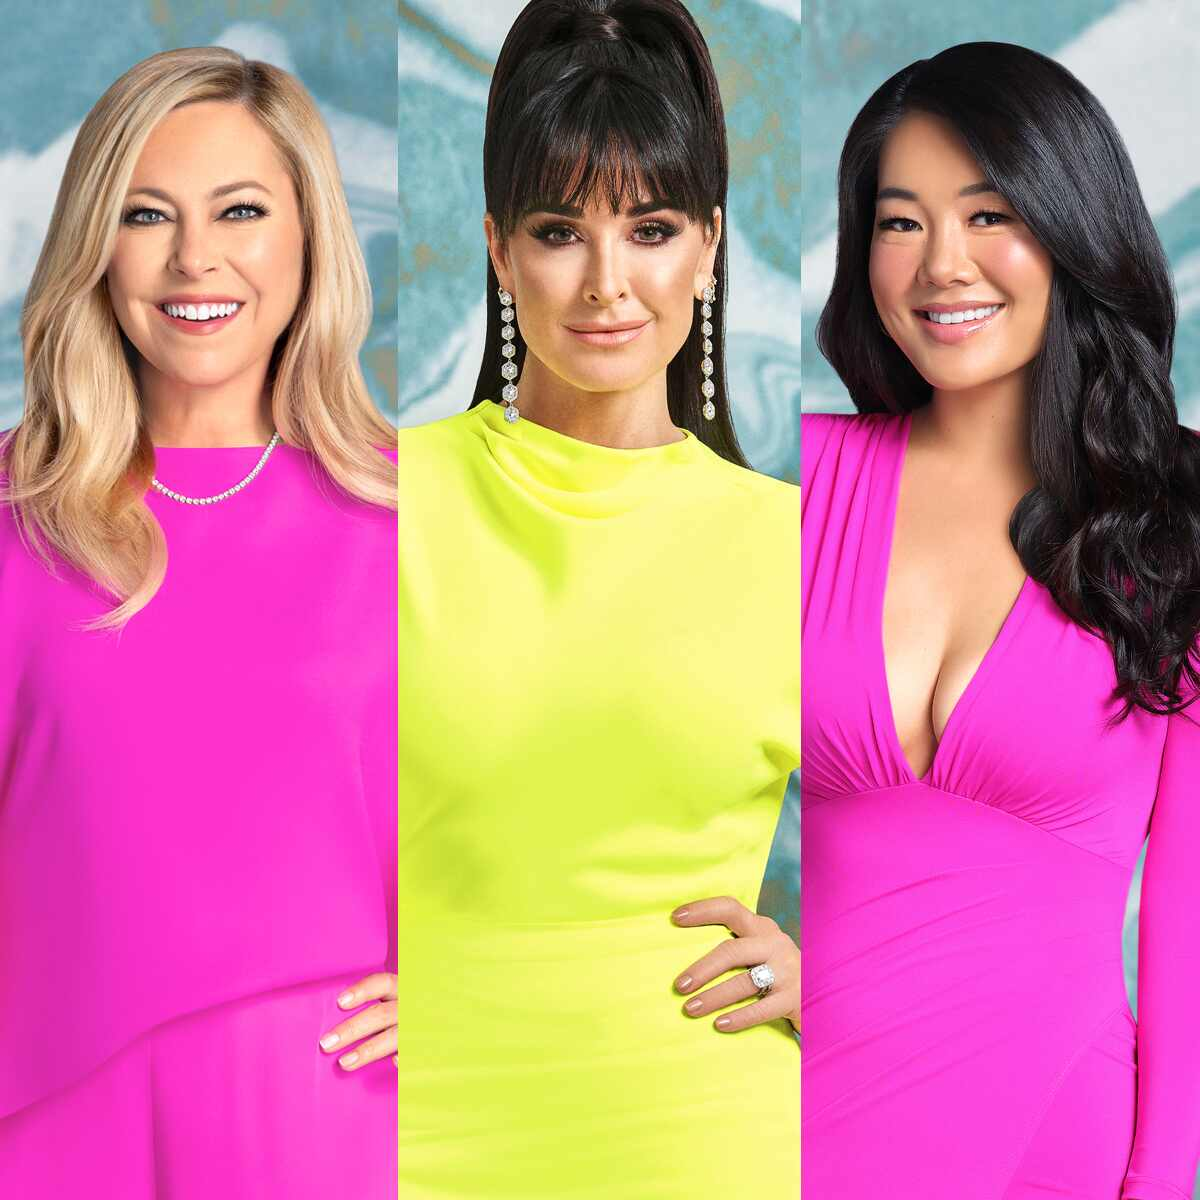 Sutton Stracke, Kyle Richards, Crystal Minkoff, The Real Housewives of Beverly Hills